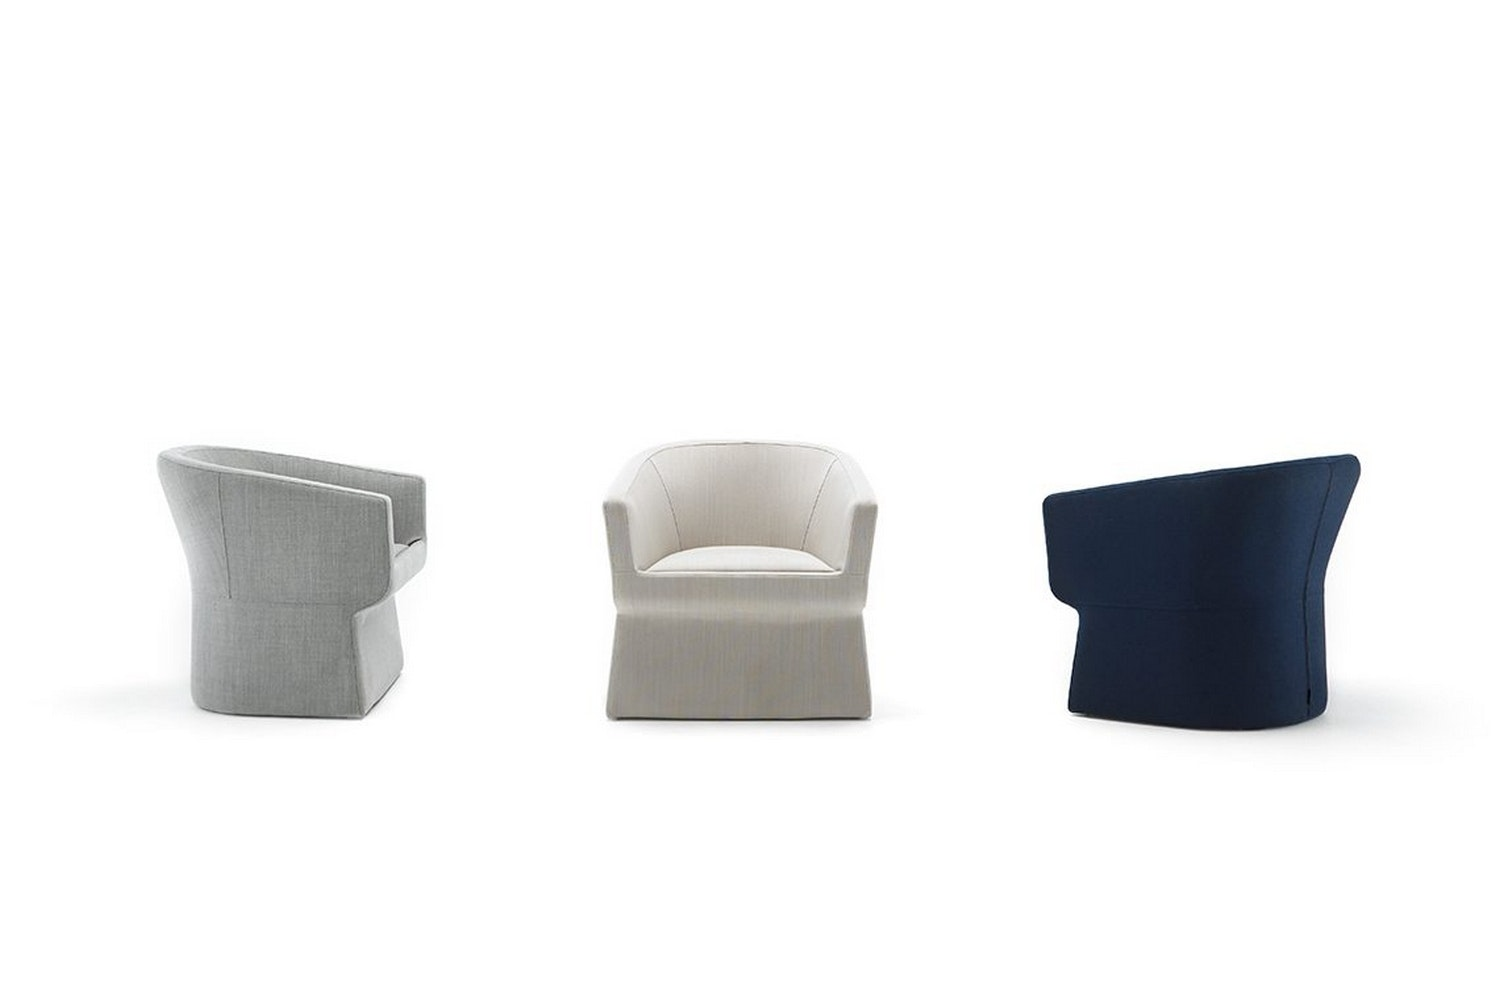 Fedele Armchair by Victor Carrasco for Viccarbe